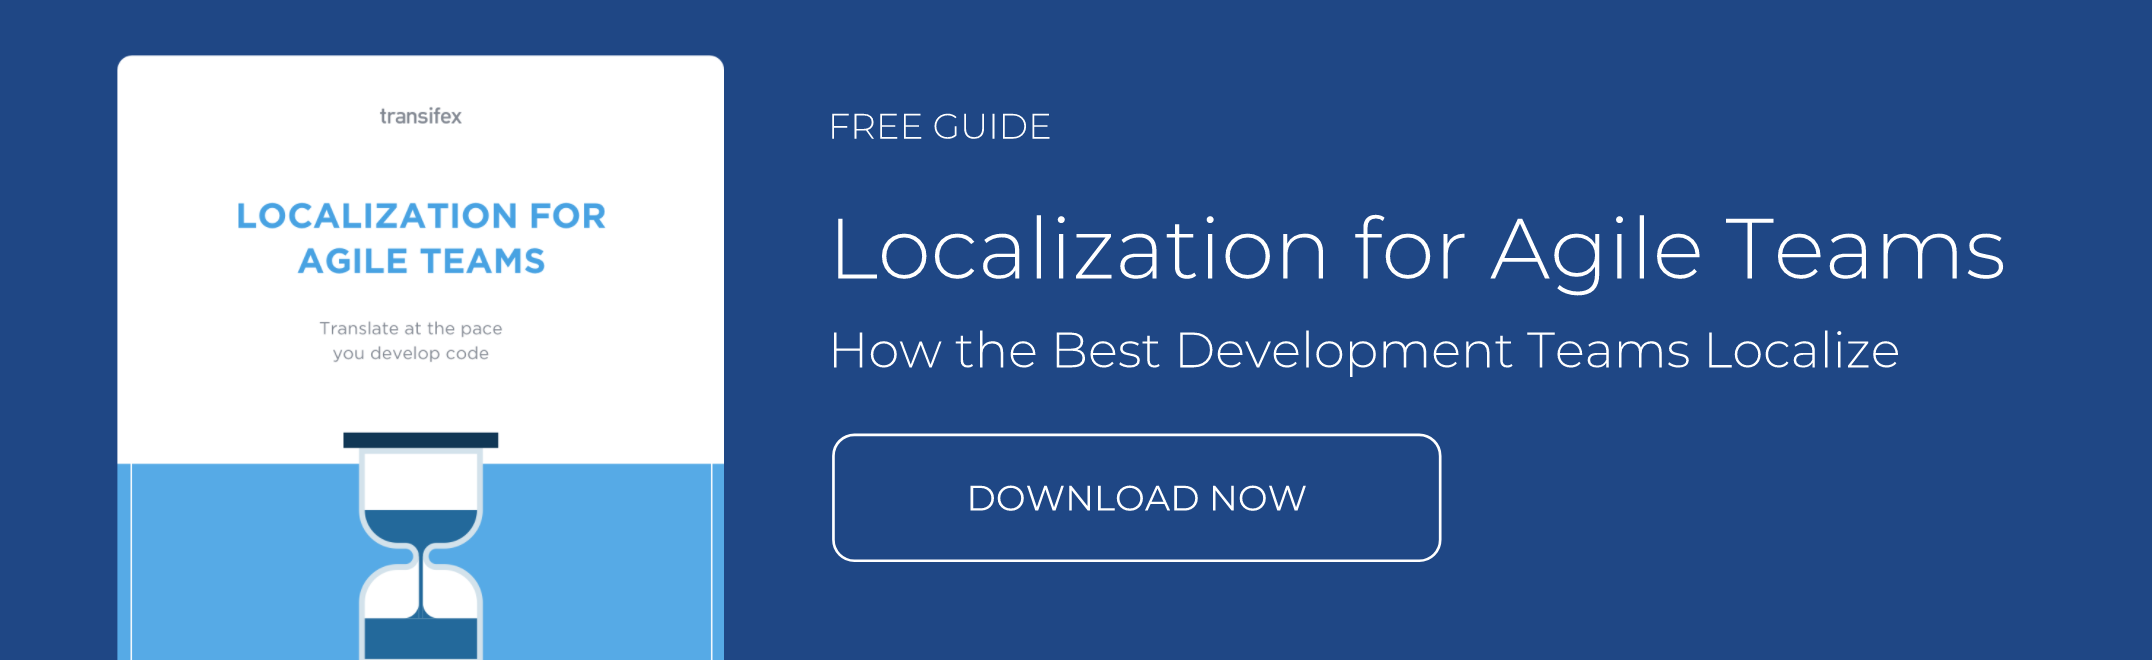 localization-for-agile-teams